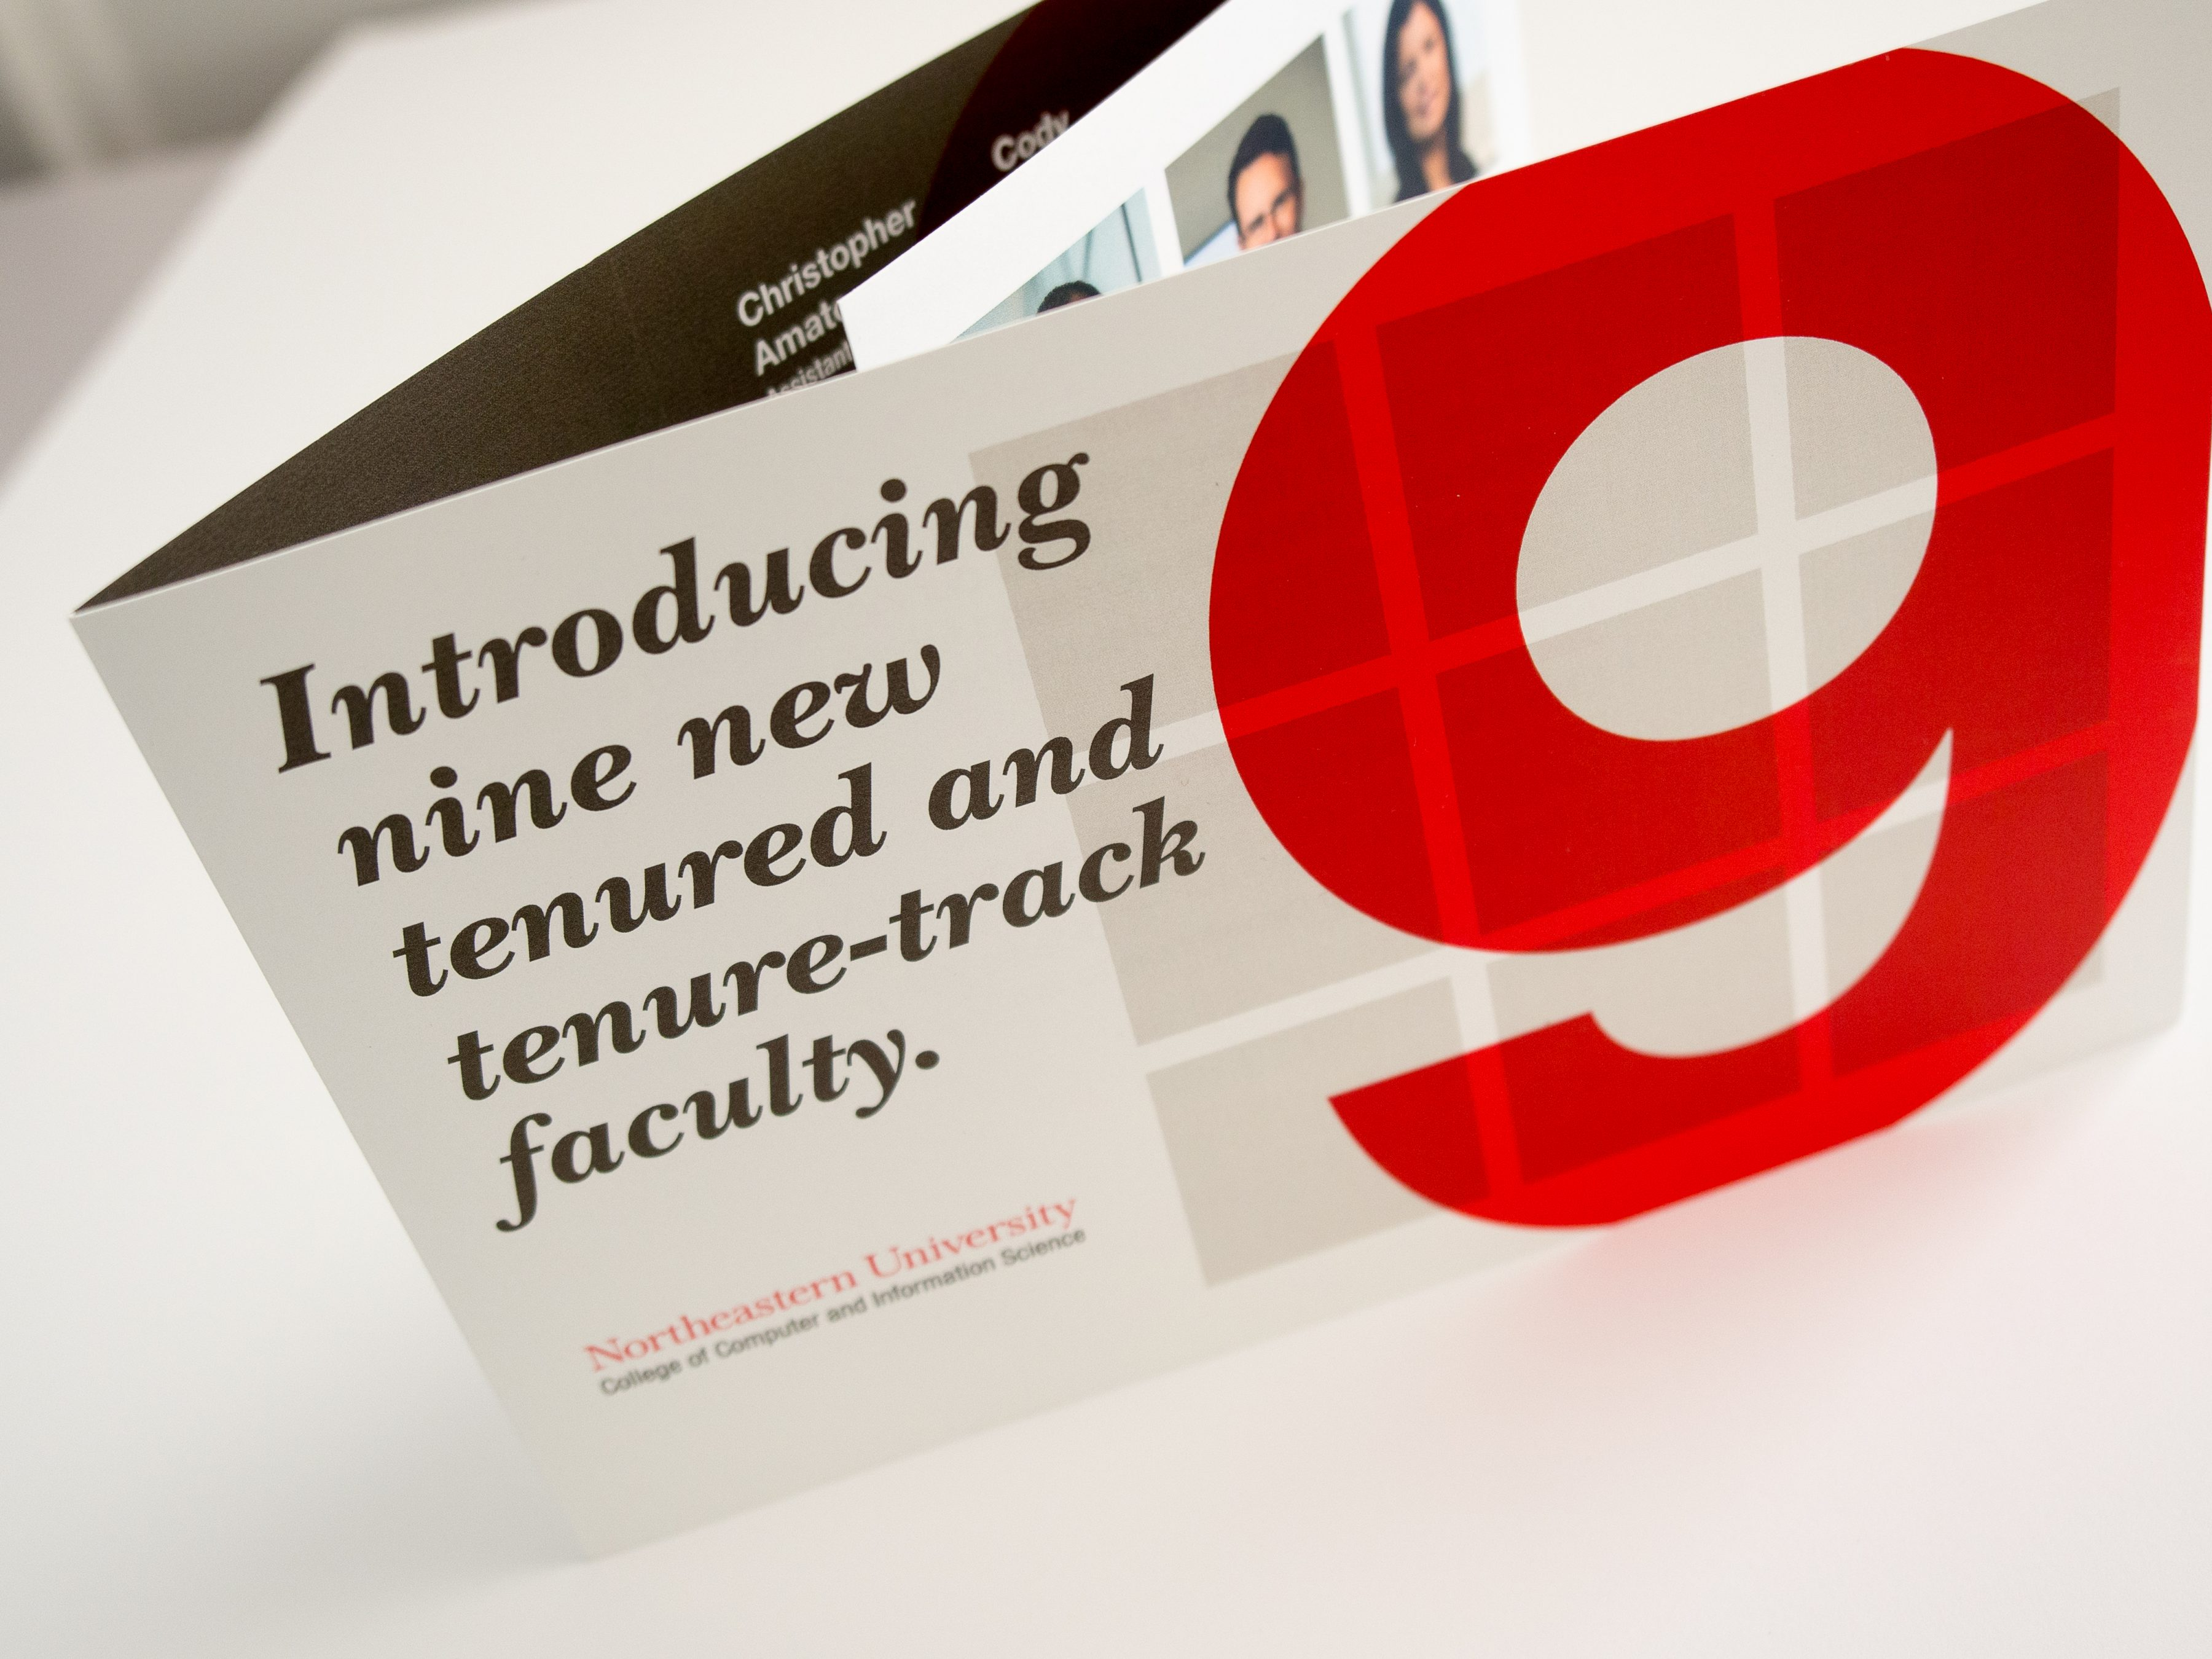 Faculty intro print collateral